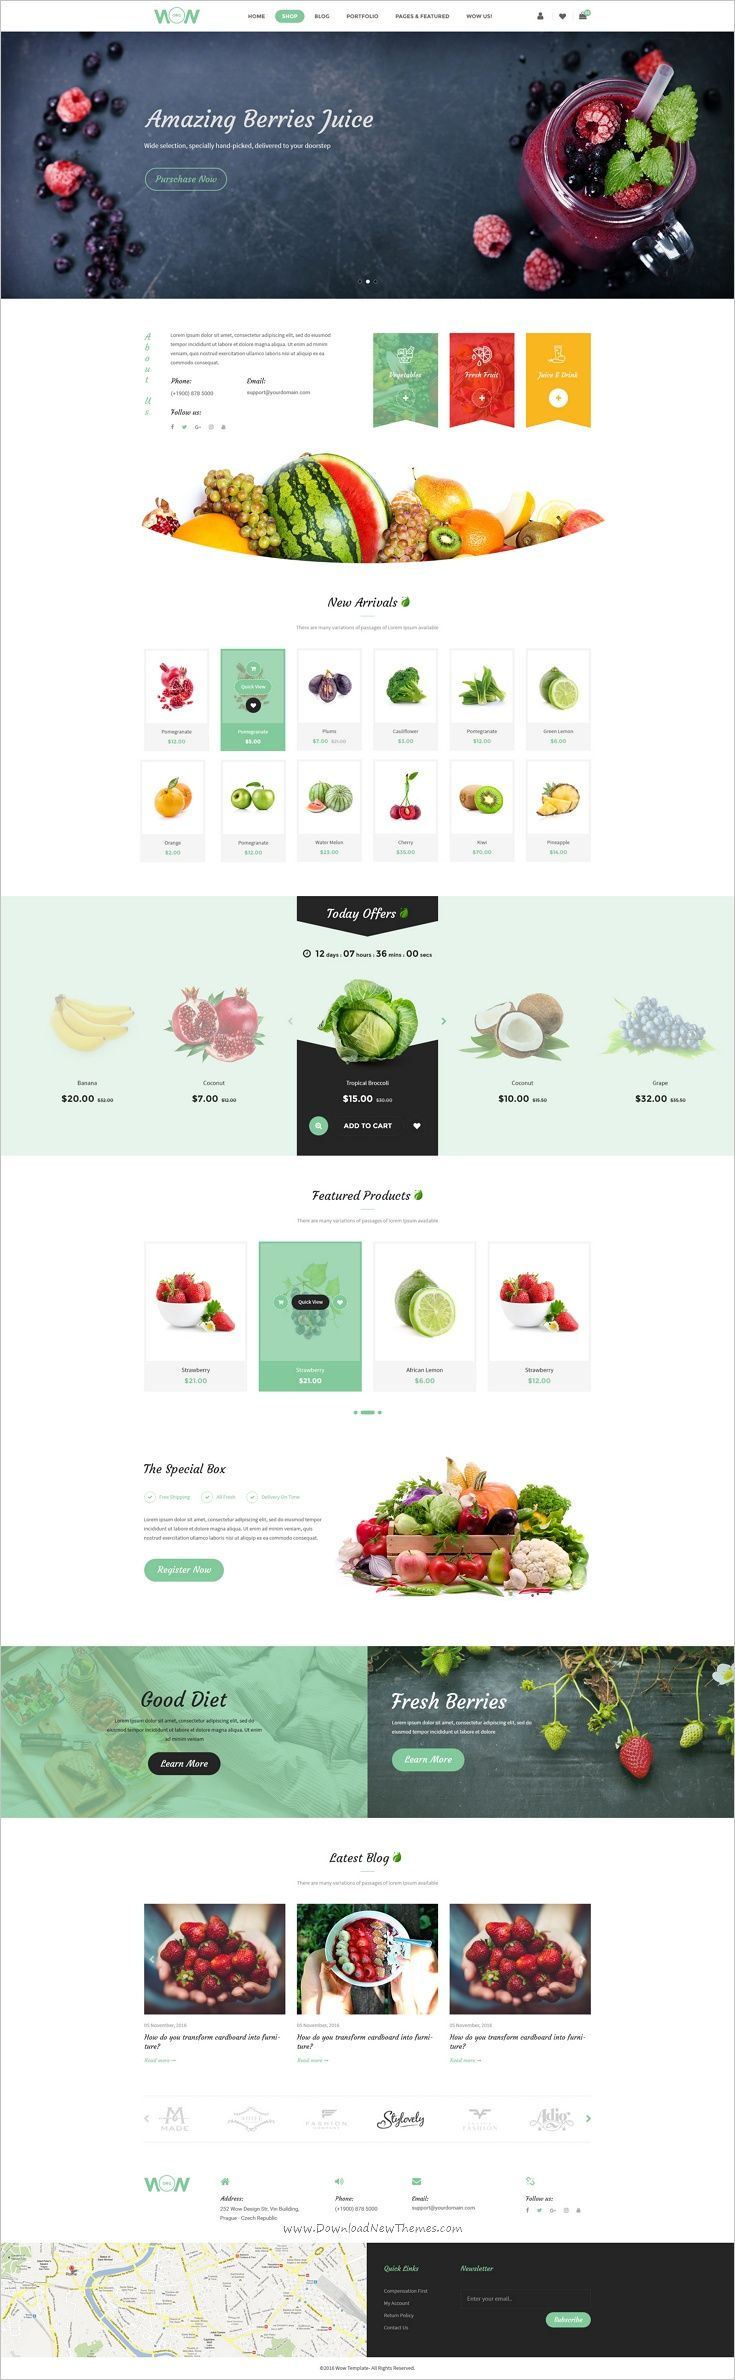 335 best Web Design images on Pinterest | Design websites, Site ...